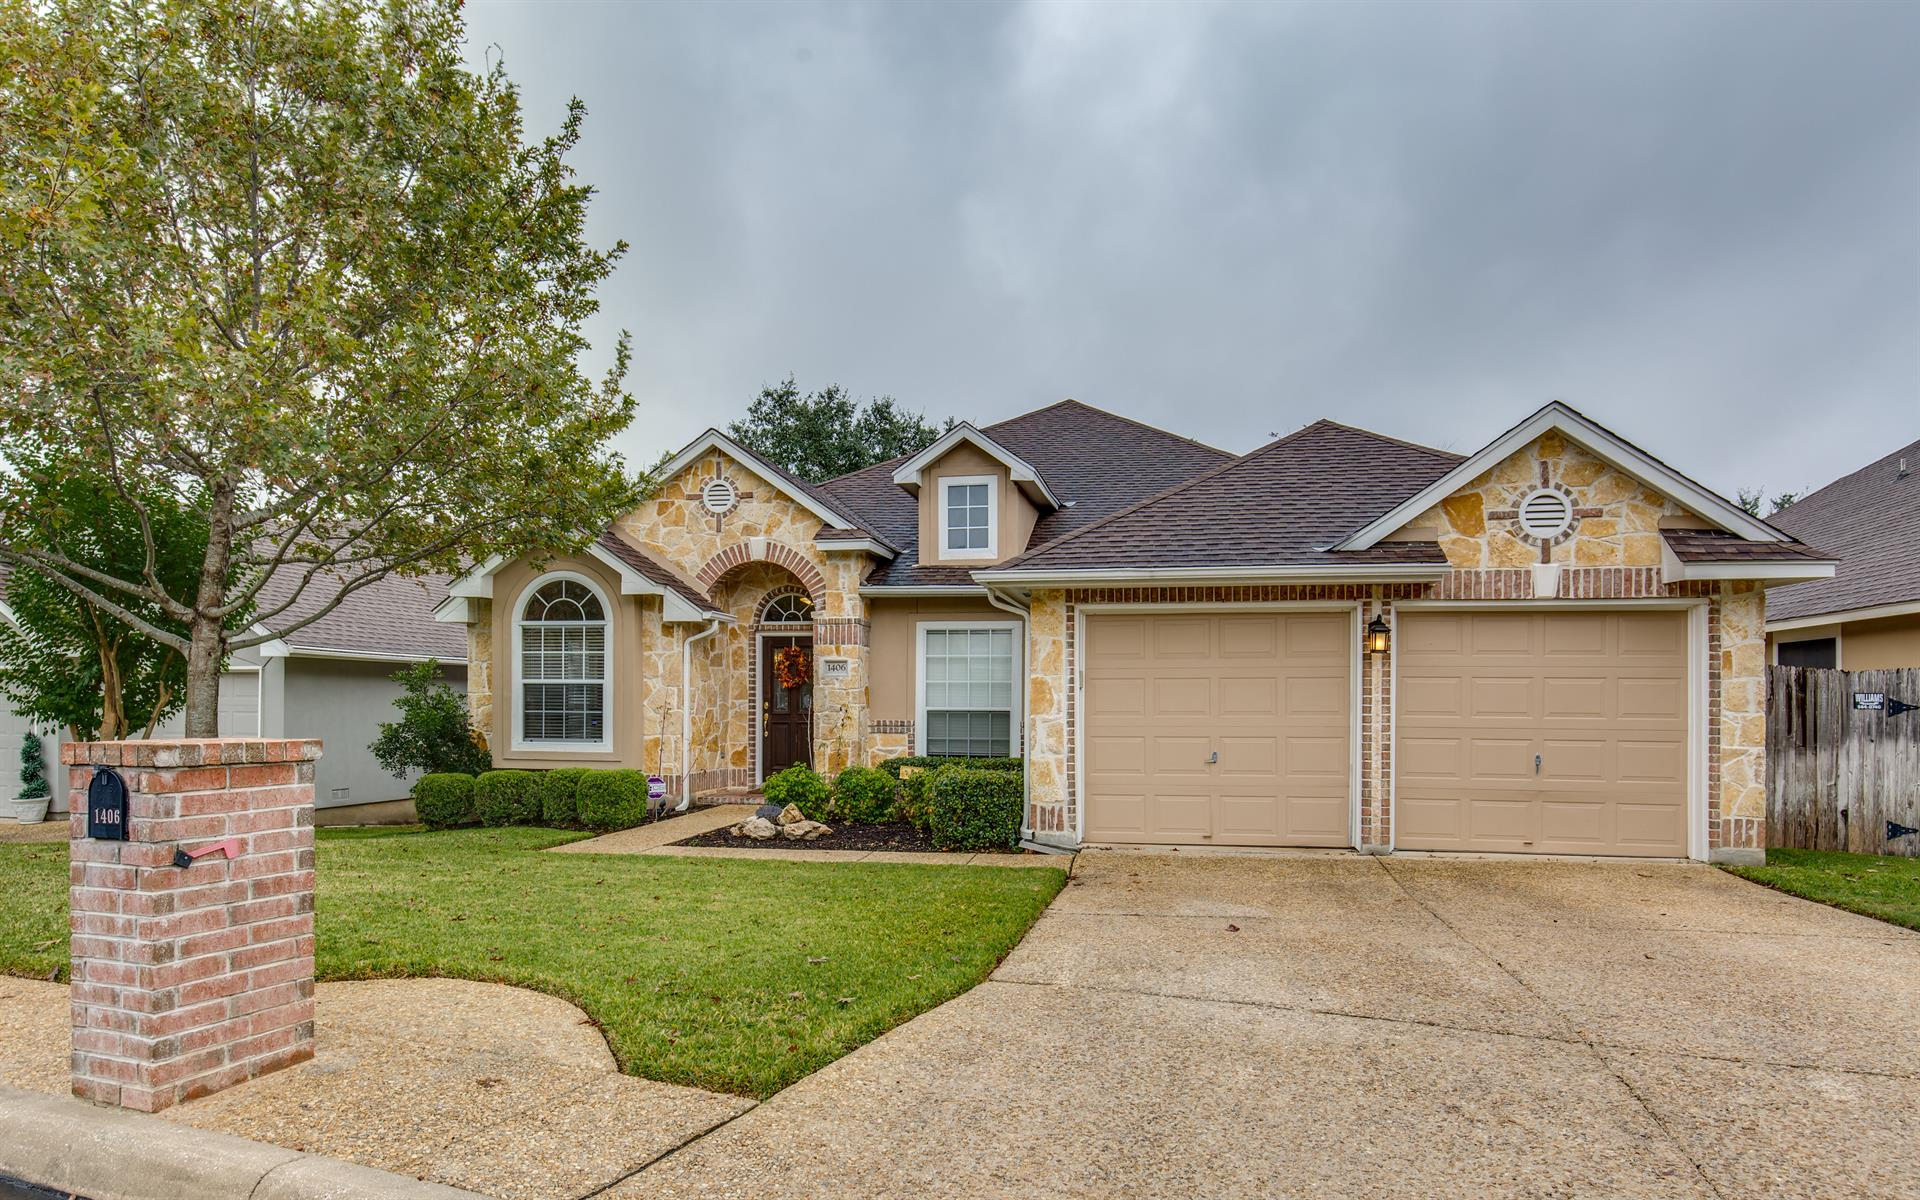 Residential for Sale at 1406 Bluff Forest 1406 Bluff Forest San Antonio, Texas 78248 United States